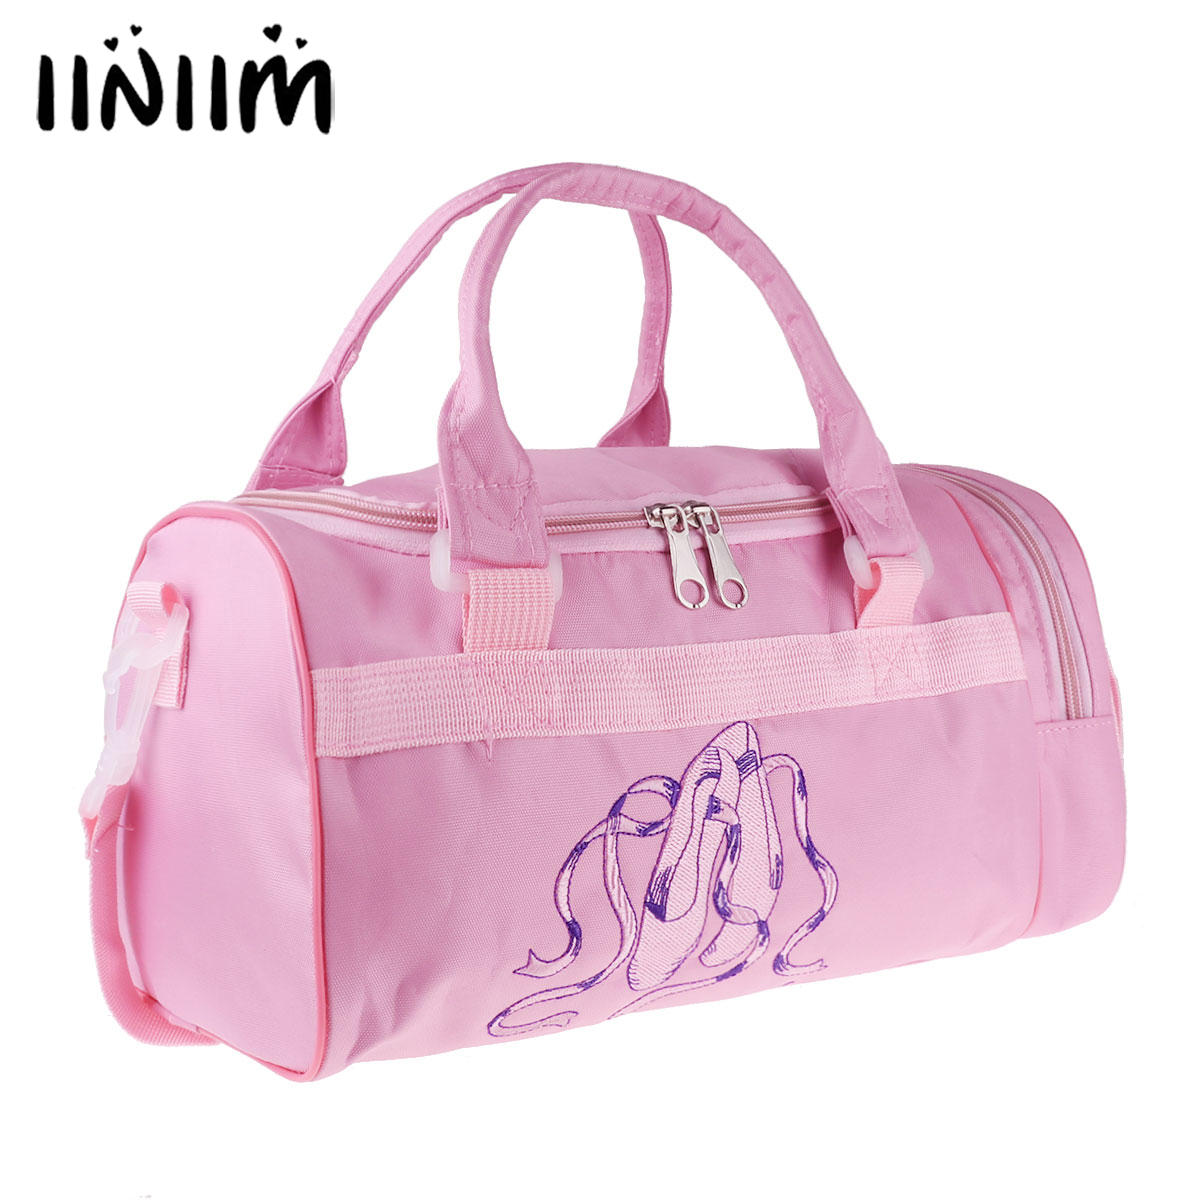 Kids Girls Ballerina Ballet Tutu Slippers Dance Bag Embroidered Toe Shoes Pattern Hand Bag Shoulder Bag with Detachable Strap